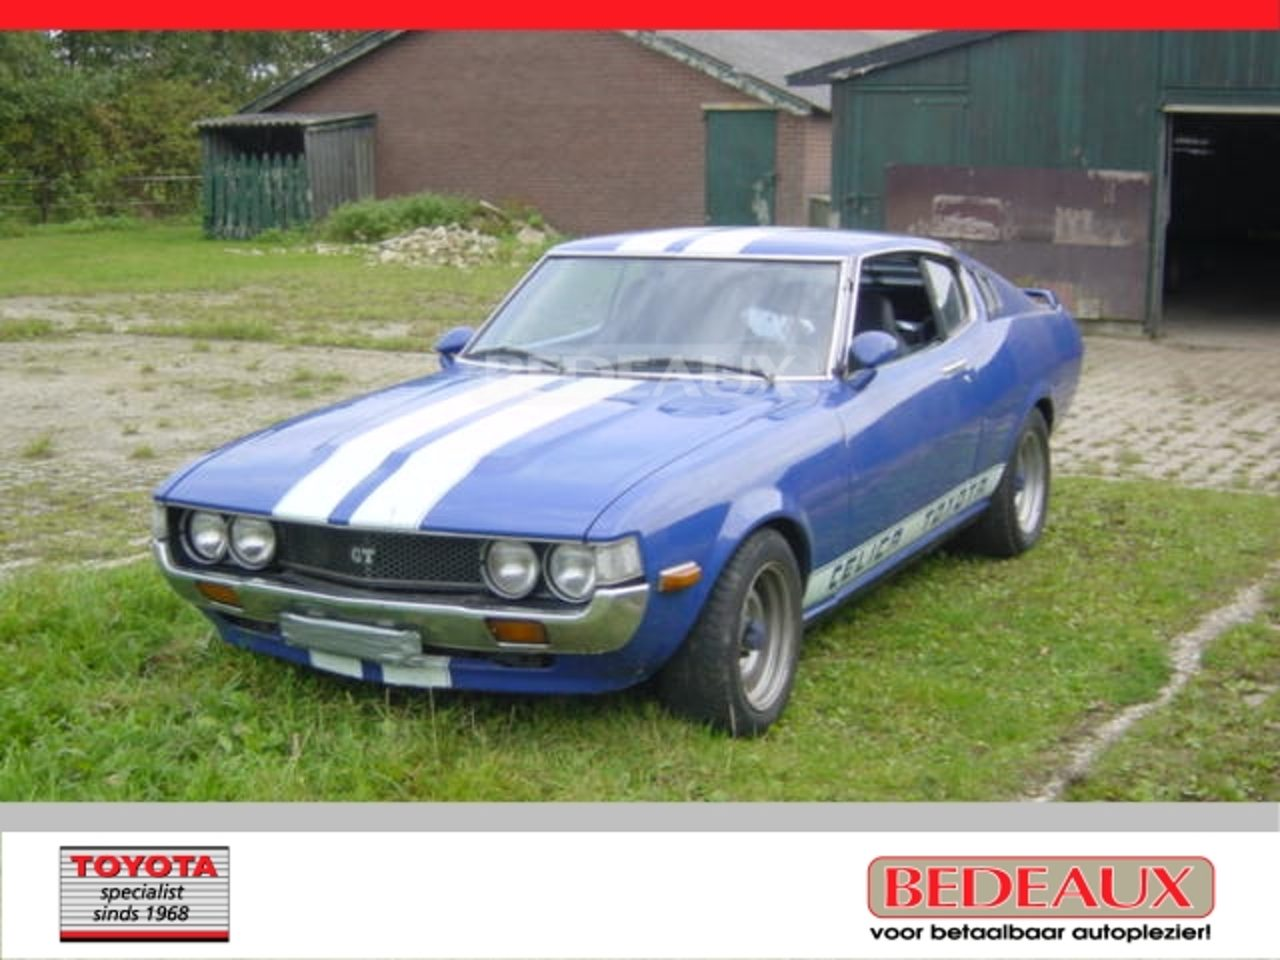 On monday we presented this week's shifter and asked you to identify the make and model of the vehicle from whence it came. Used Toyota Celica Ad Year 1977 99000 Km Reezocar